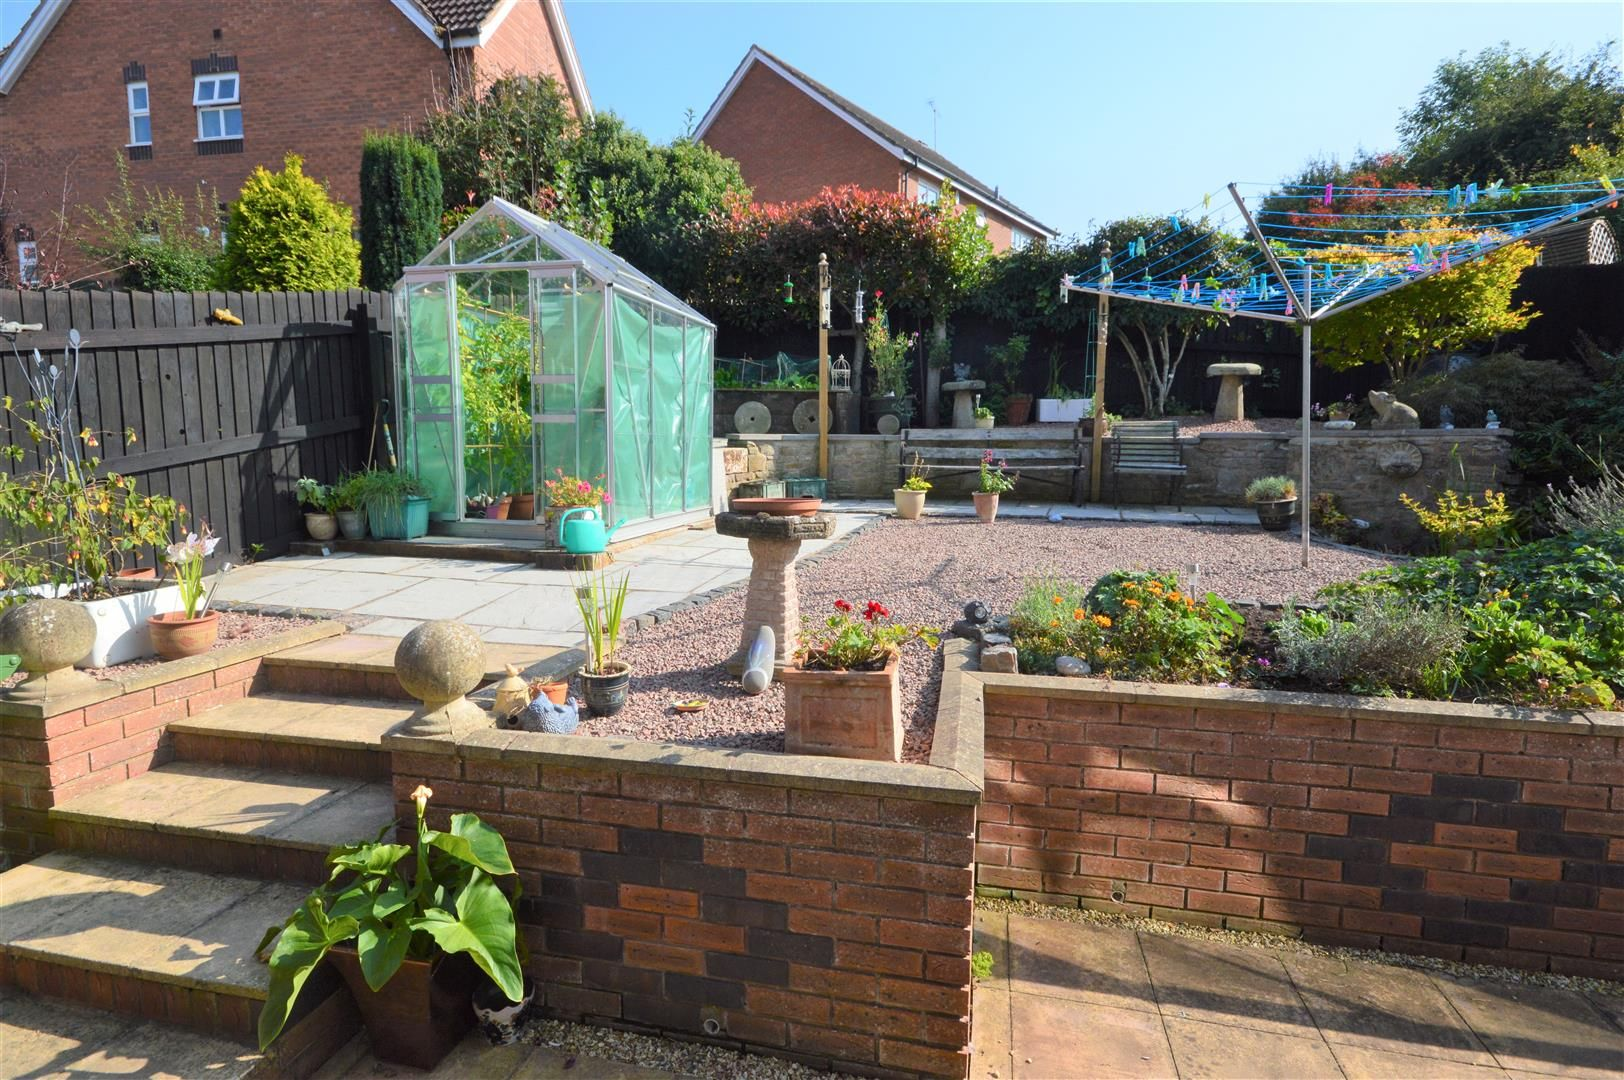 4 bed detached for sale in Leominster 10